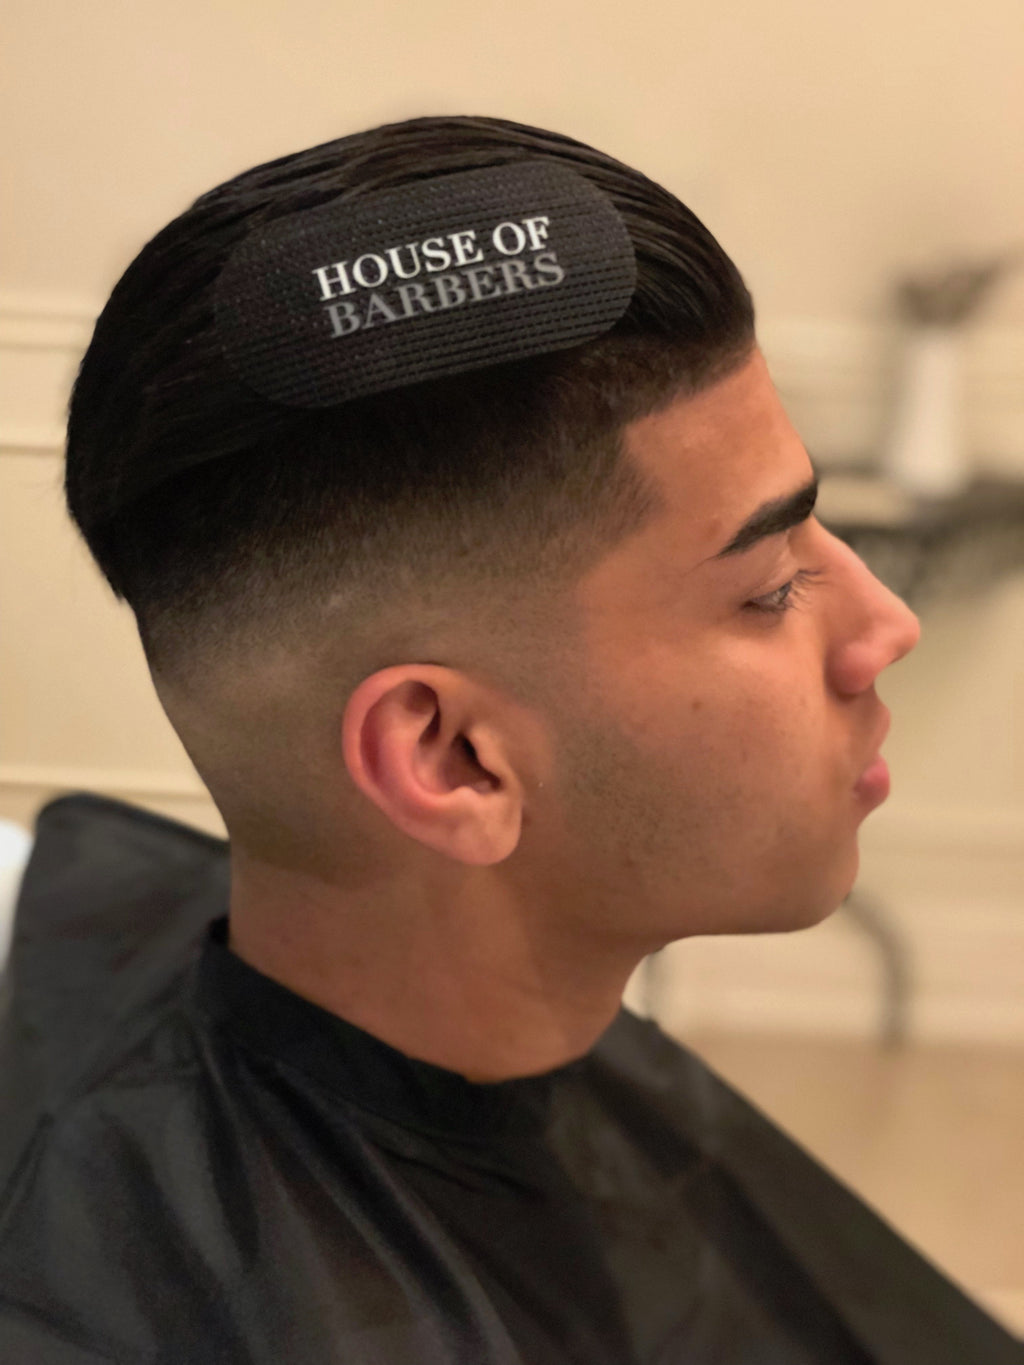 HOUSE OF BARBERS Hair Grippers - Hair Holder for men